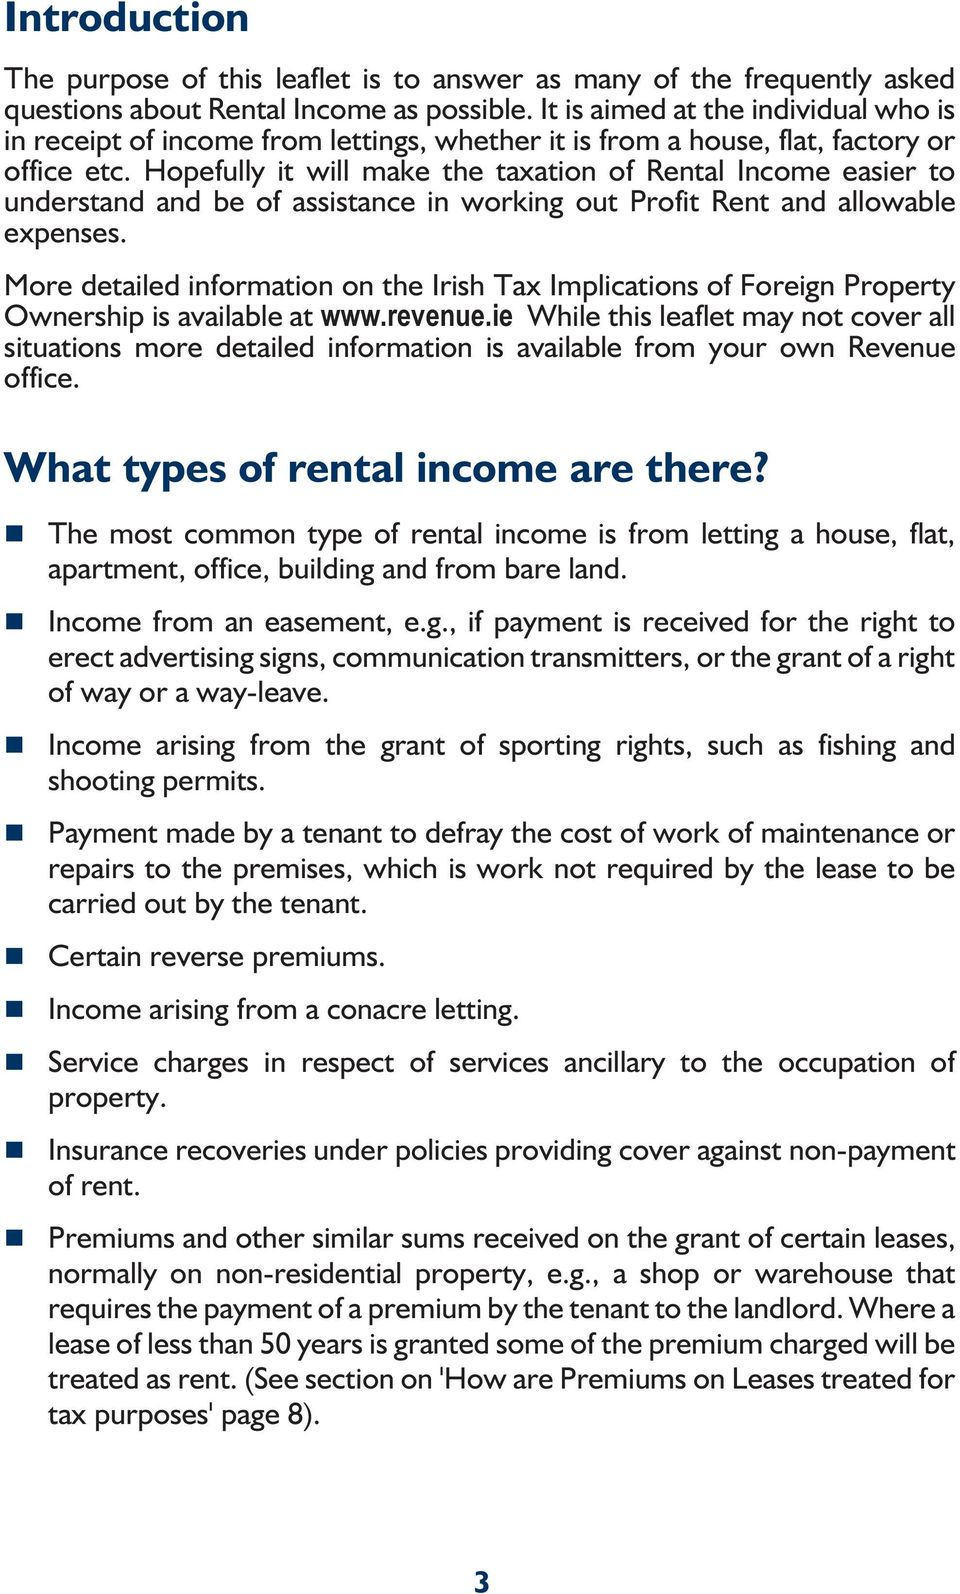 Hopefully it will make the taxation of Rental Income easier to understand and be of assistance in working out Profit Rent and allowable expenses.